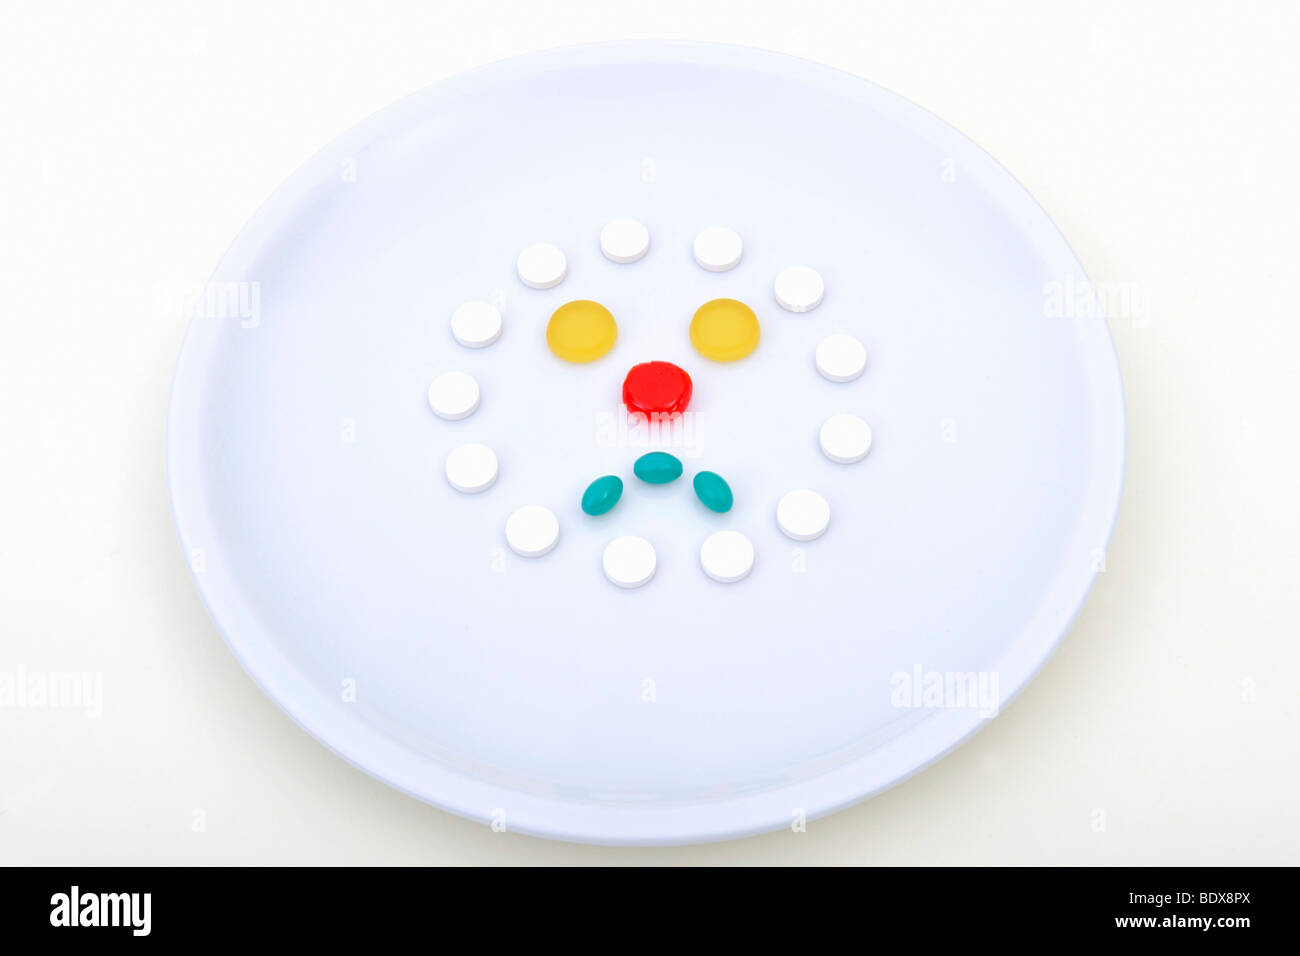 Symbolic image for synthetic food, pill consumption, drug abuse - Stock Image